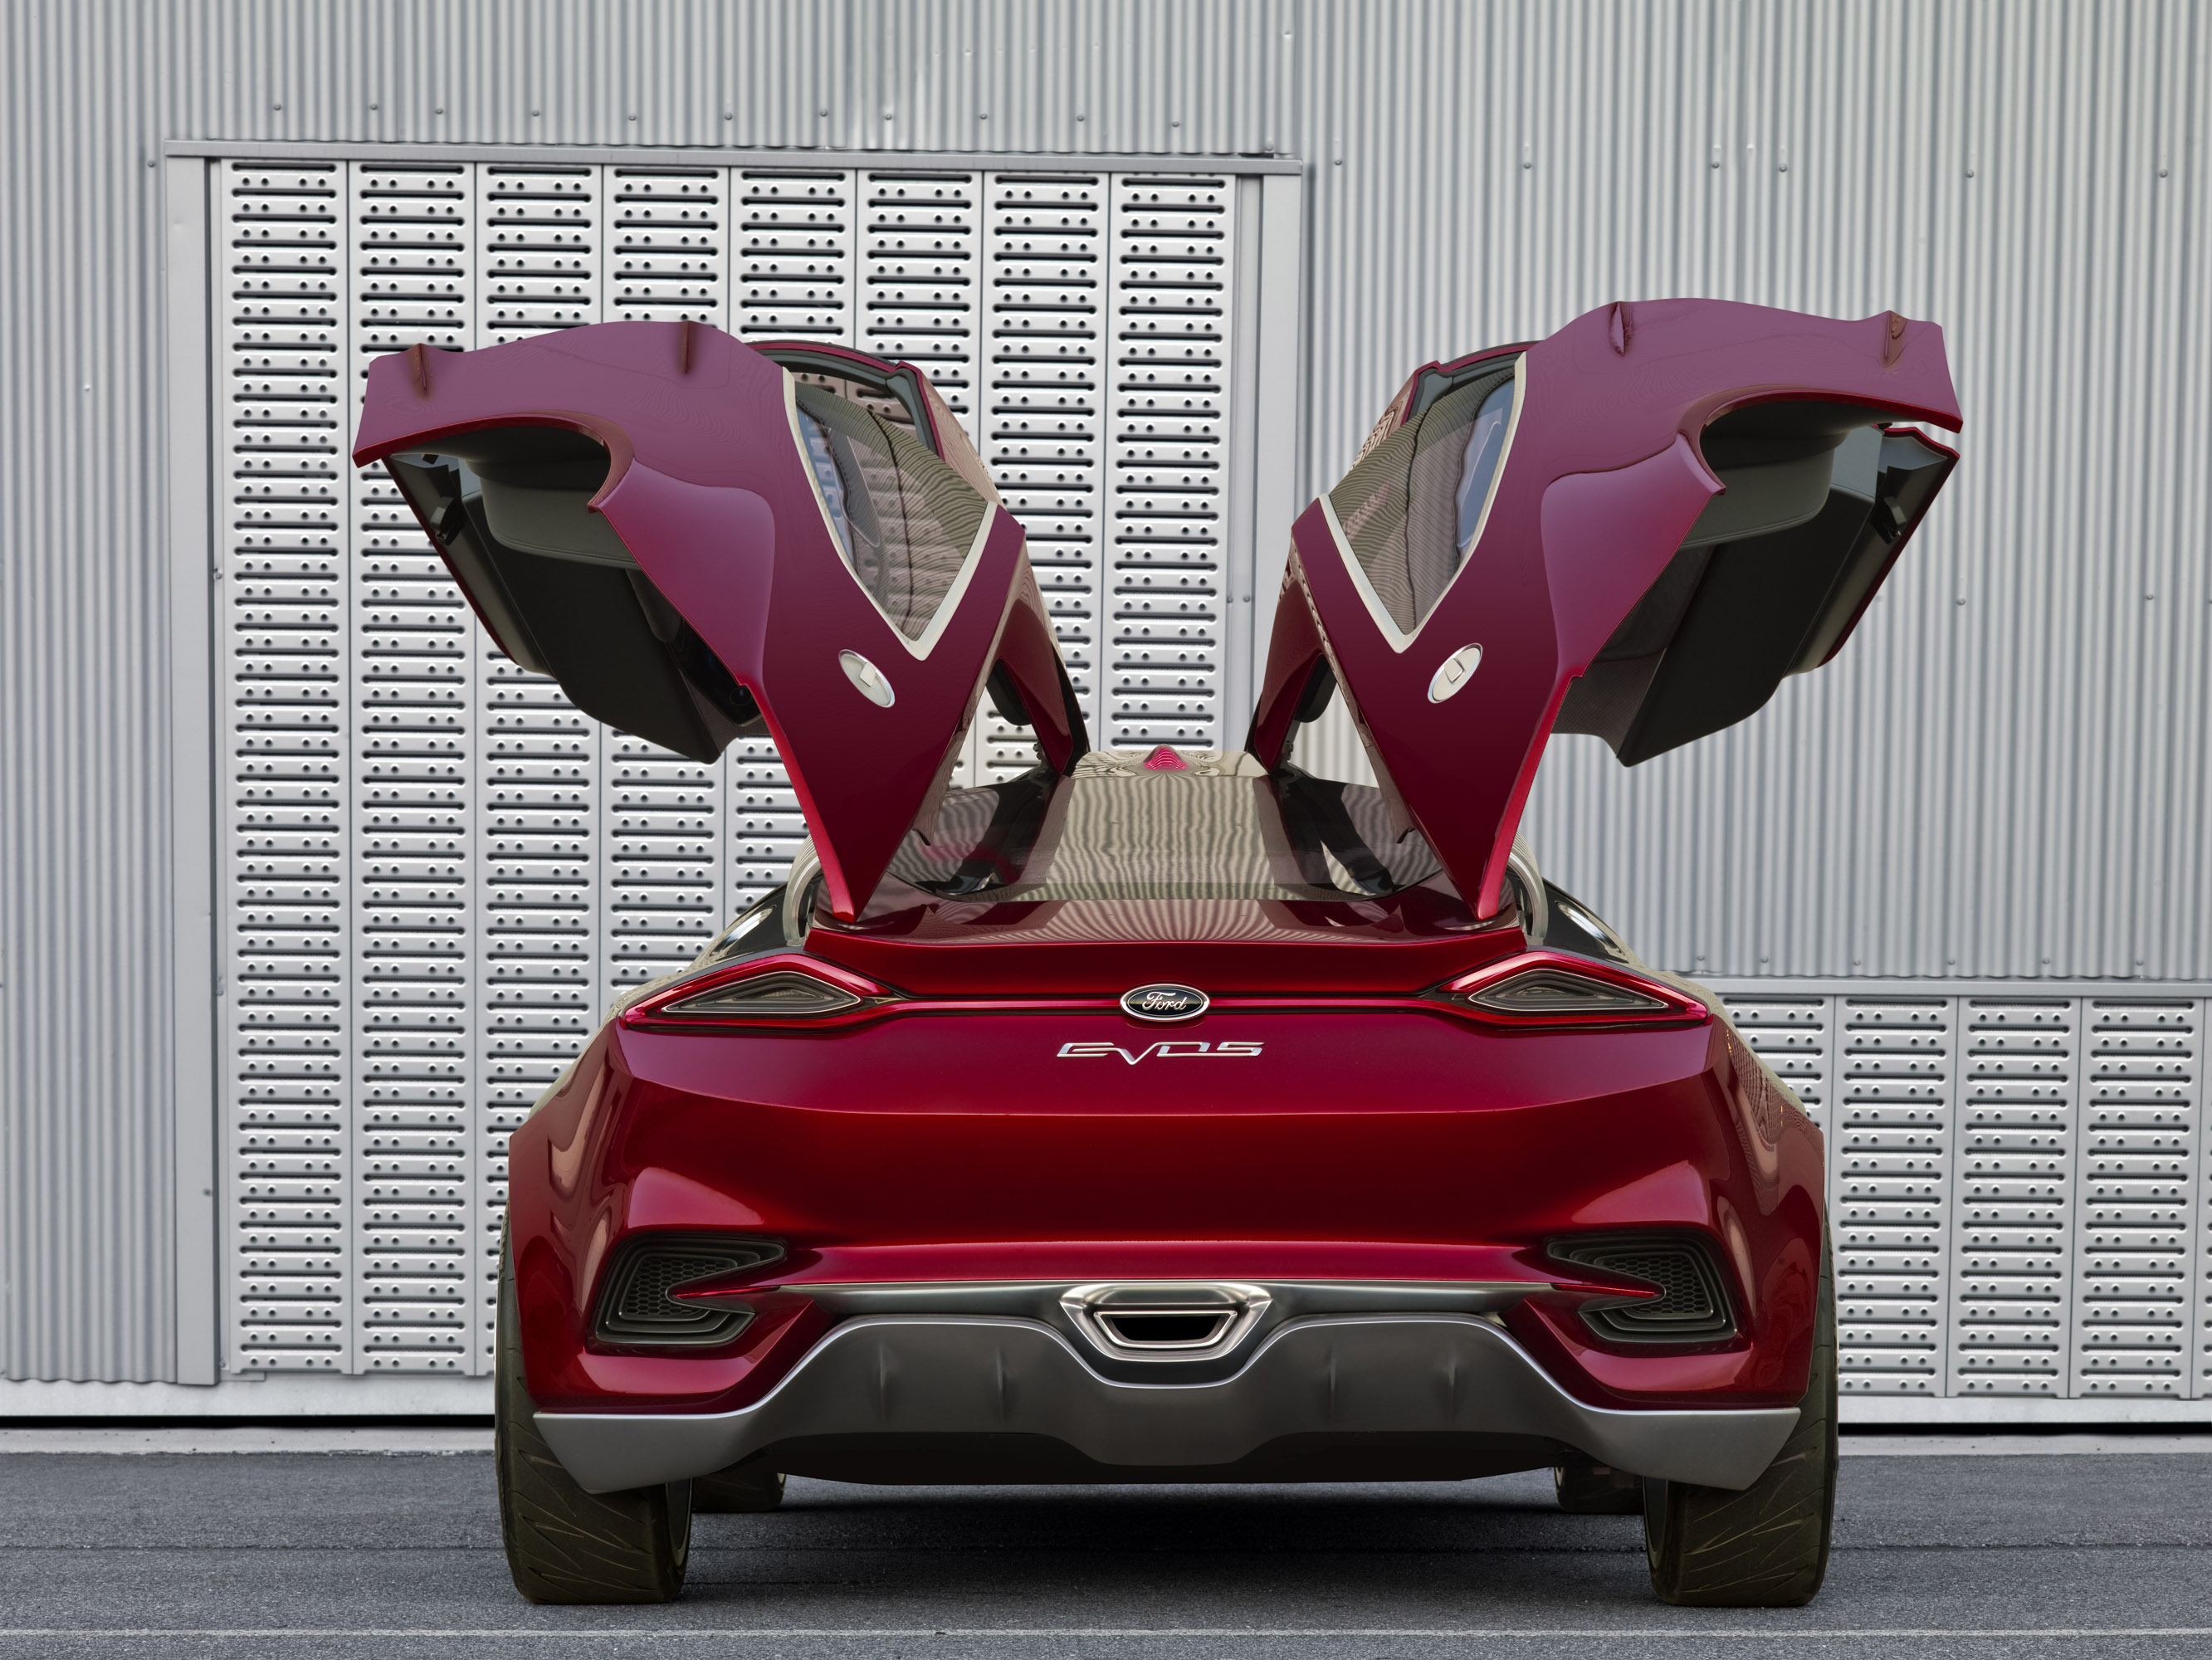 The Amazing Ford Evos Concept (10)